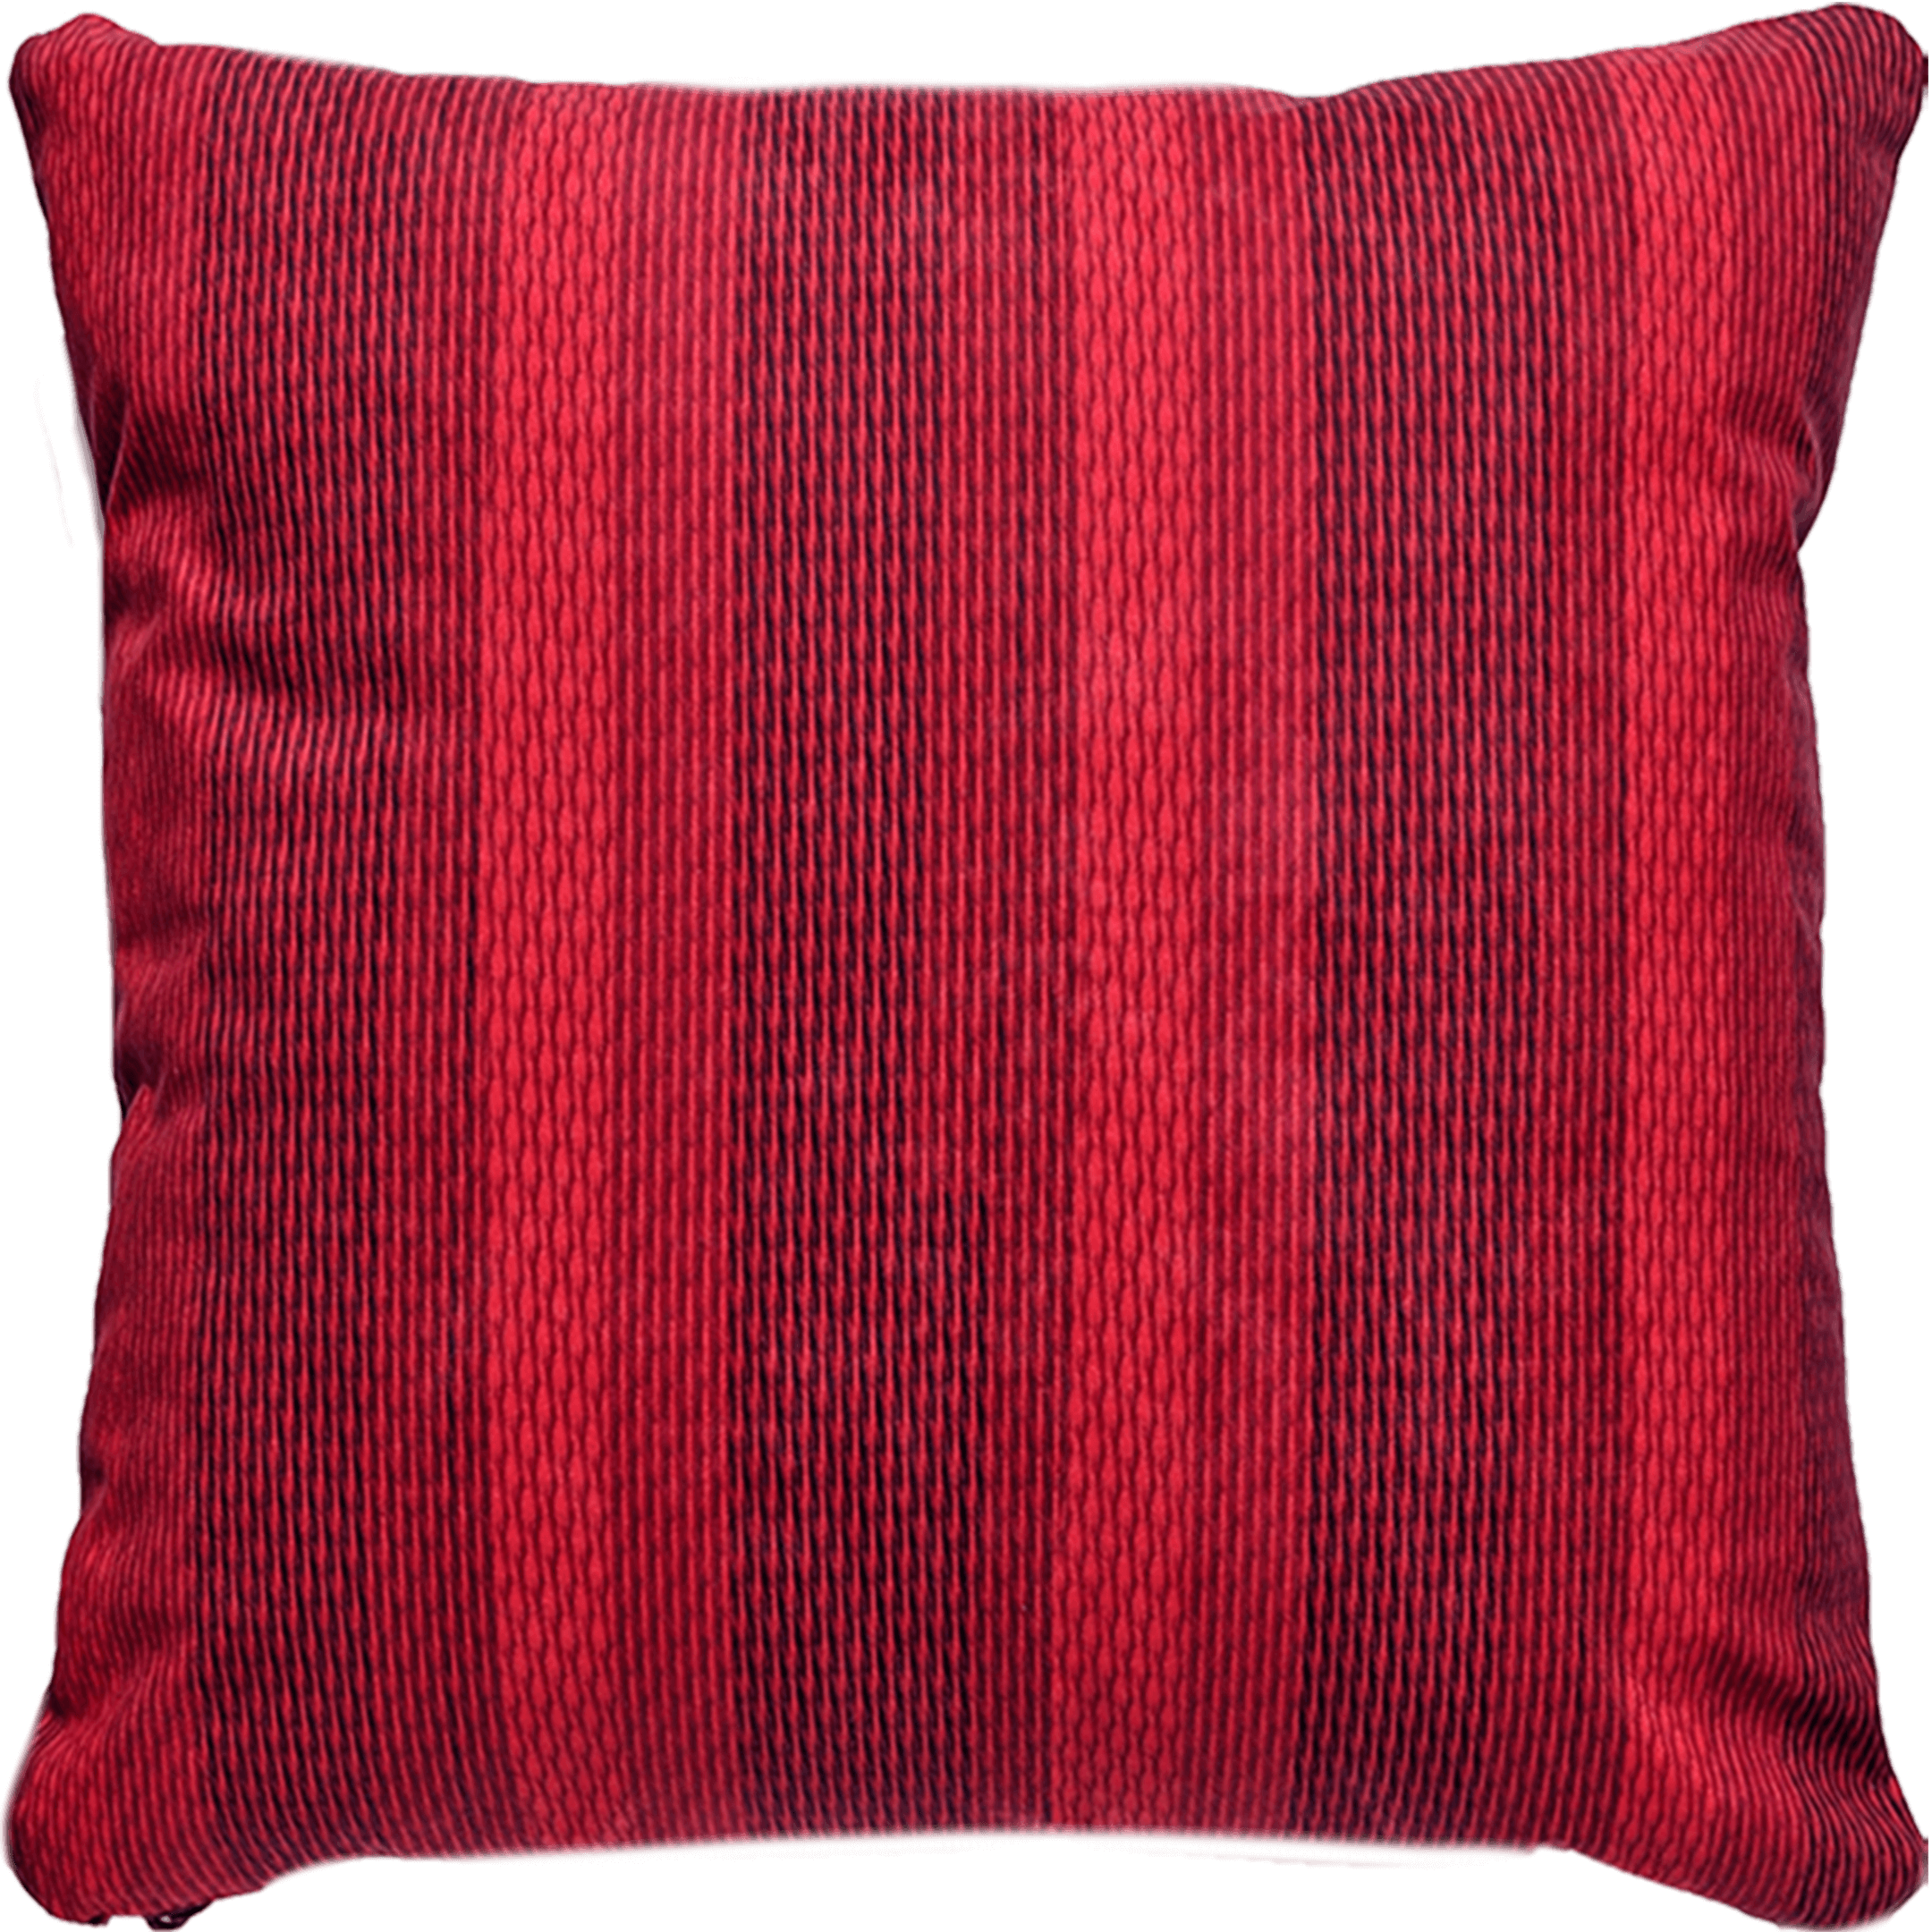 Patterned faux suede red throw pillow. Dark red, ruby and crimson vertical lines.